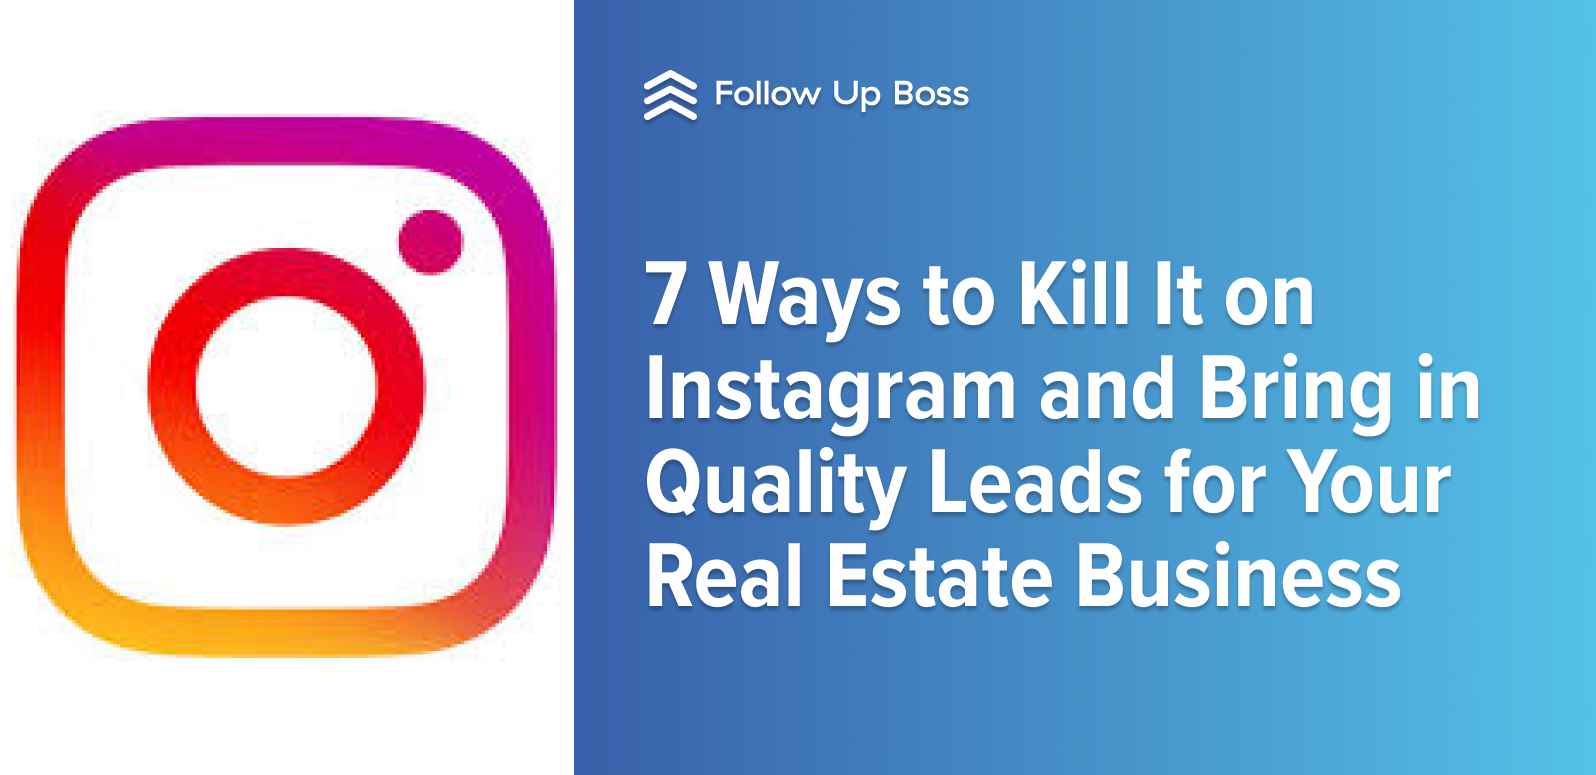 7 Ways to Kill It on Instagram and Bring in Quality Leads for Your Real Estate Business